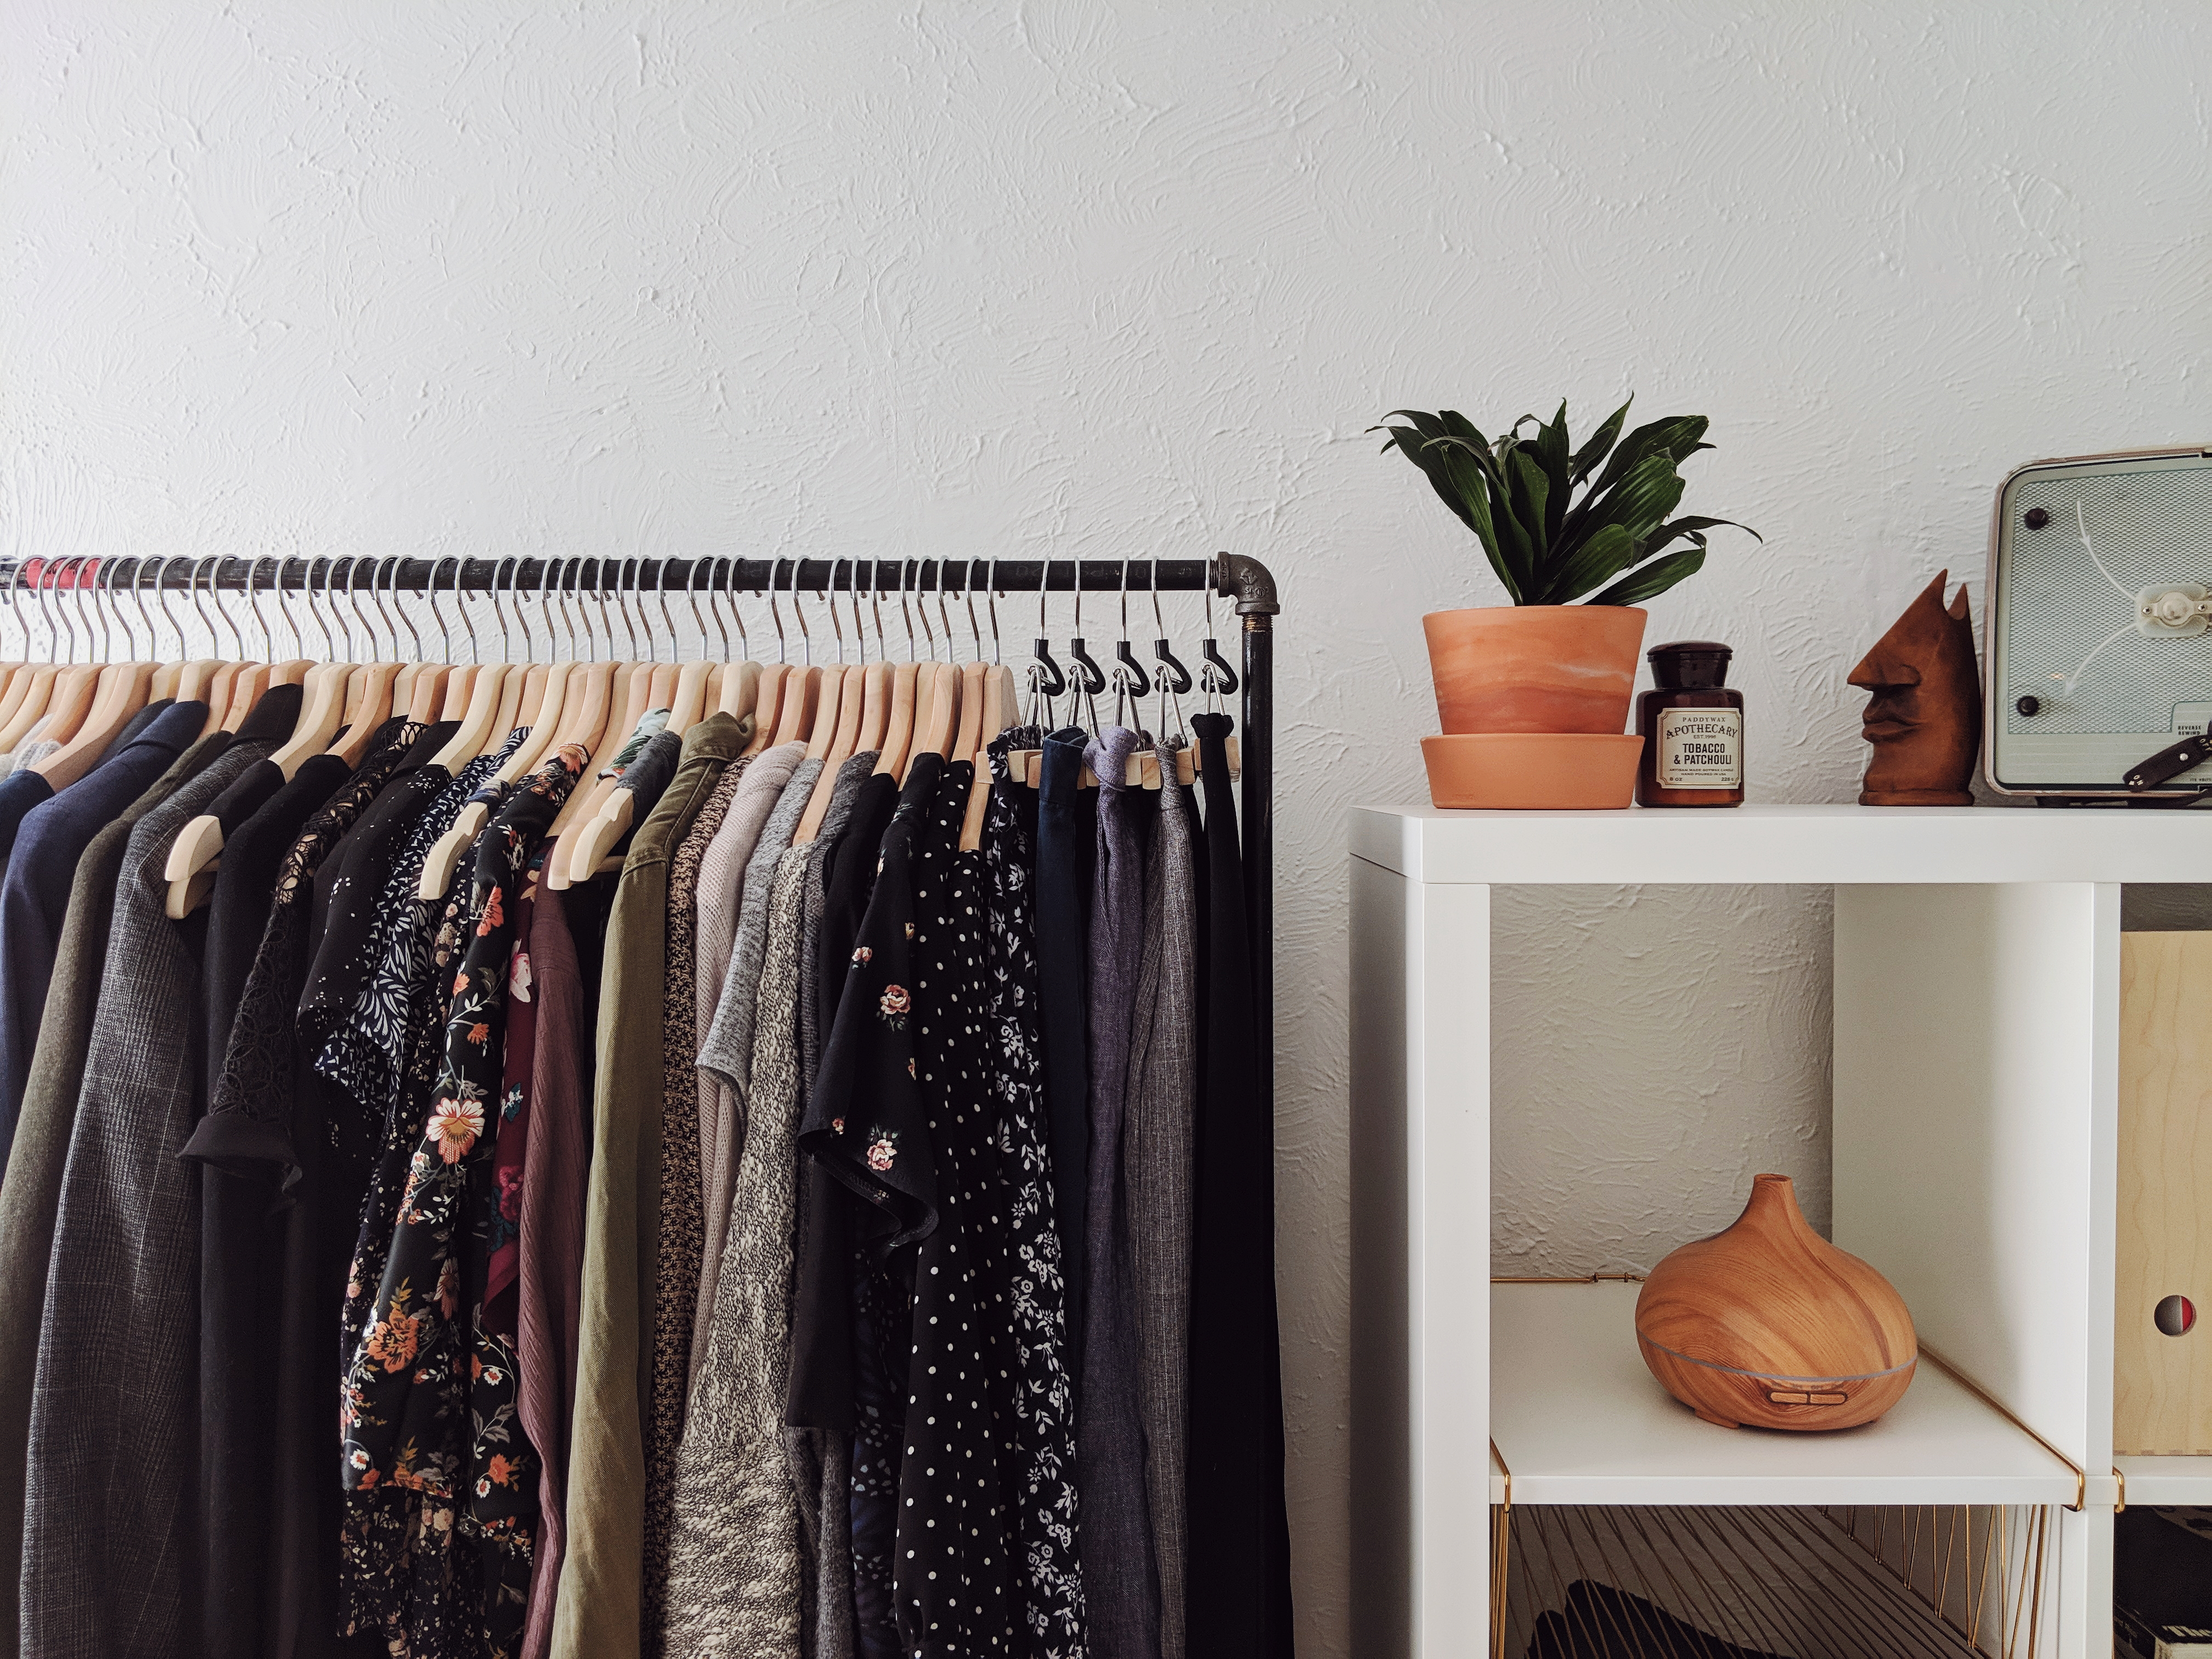 An inside look at the business of ethical fashion blogging